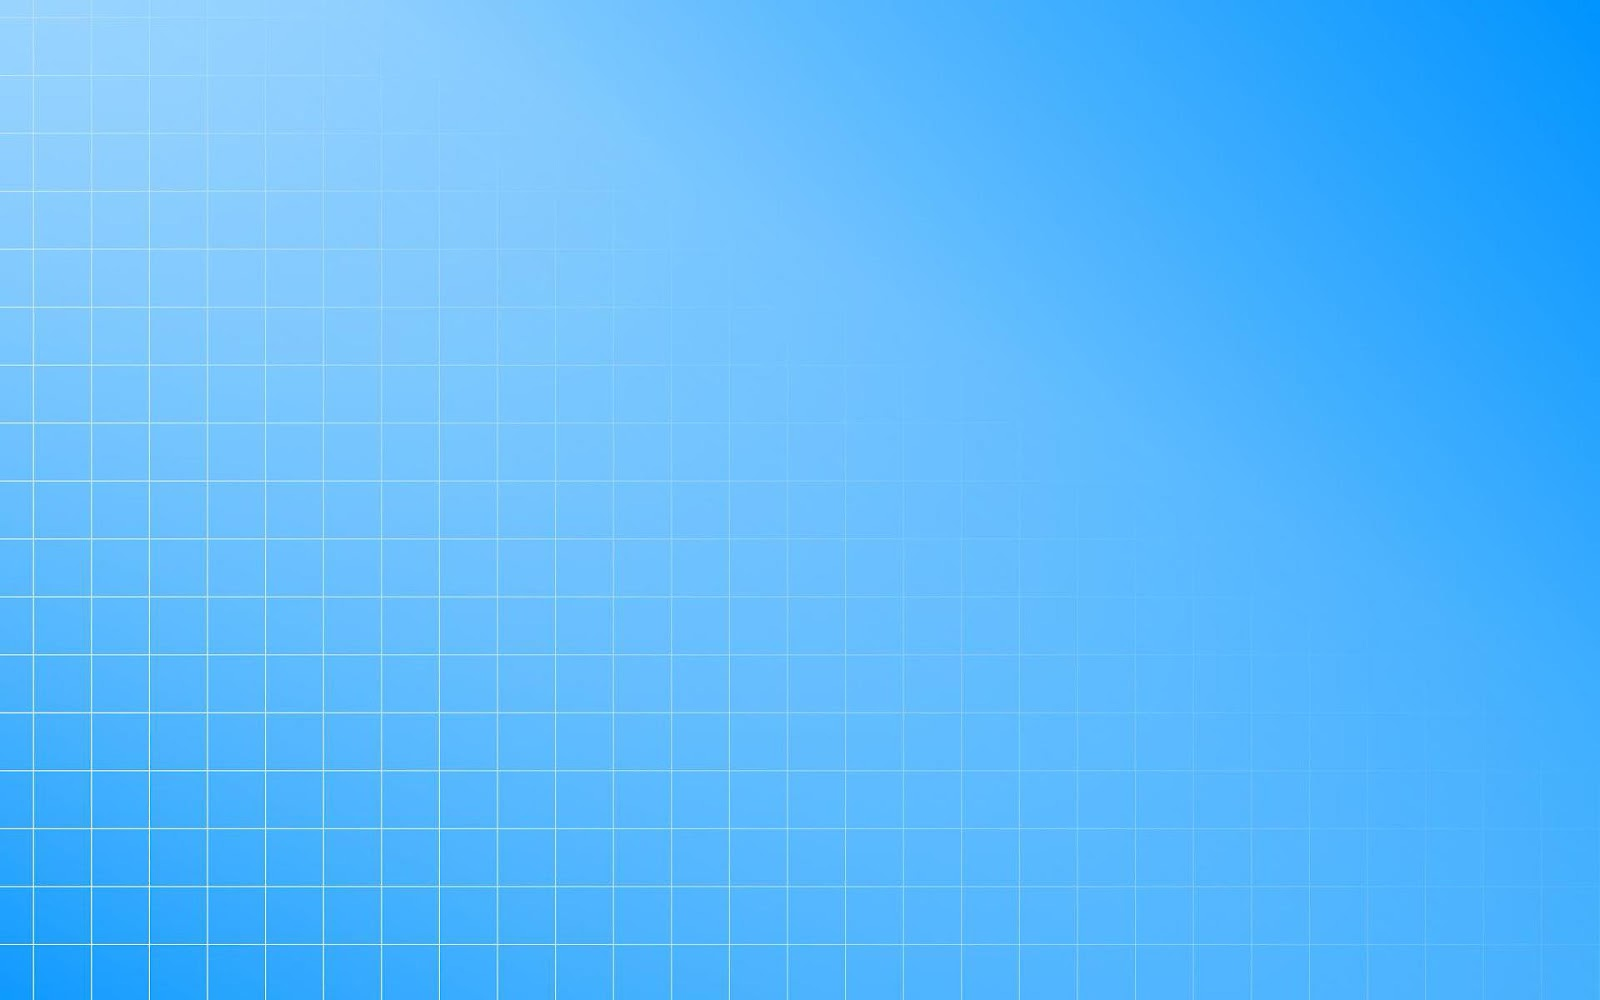 simple blue backgrounds hd - photo #18